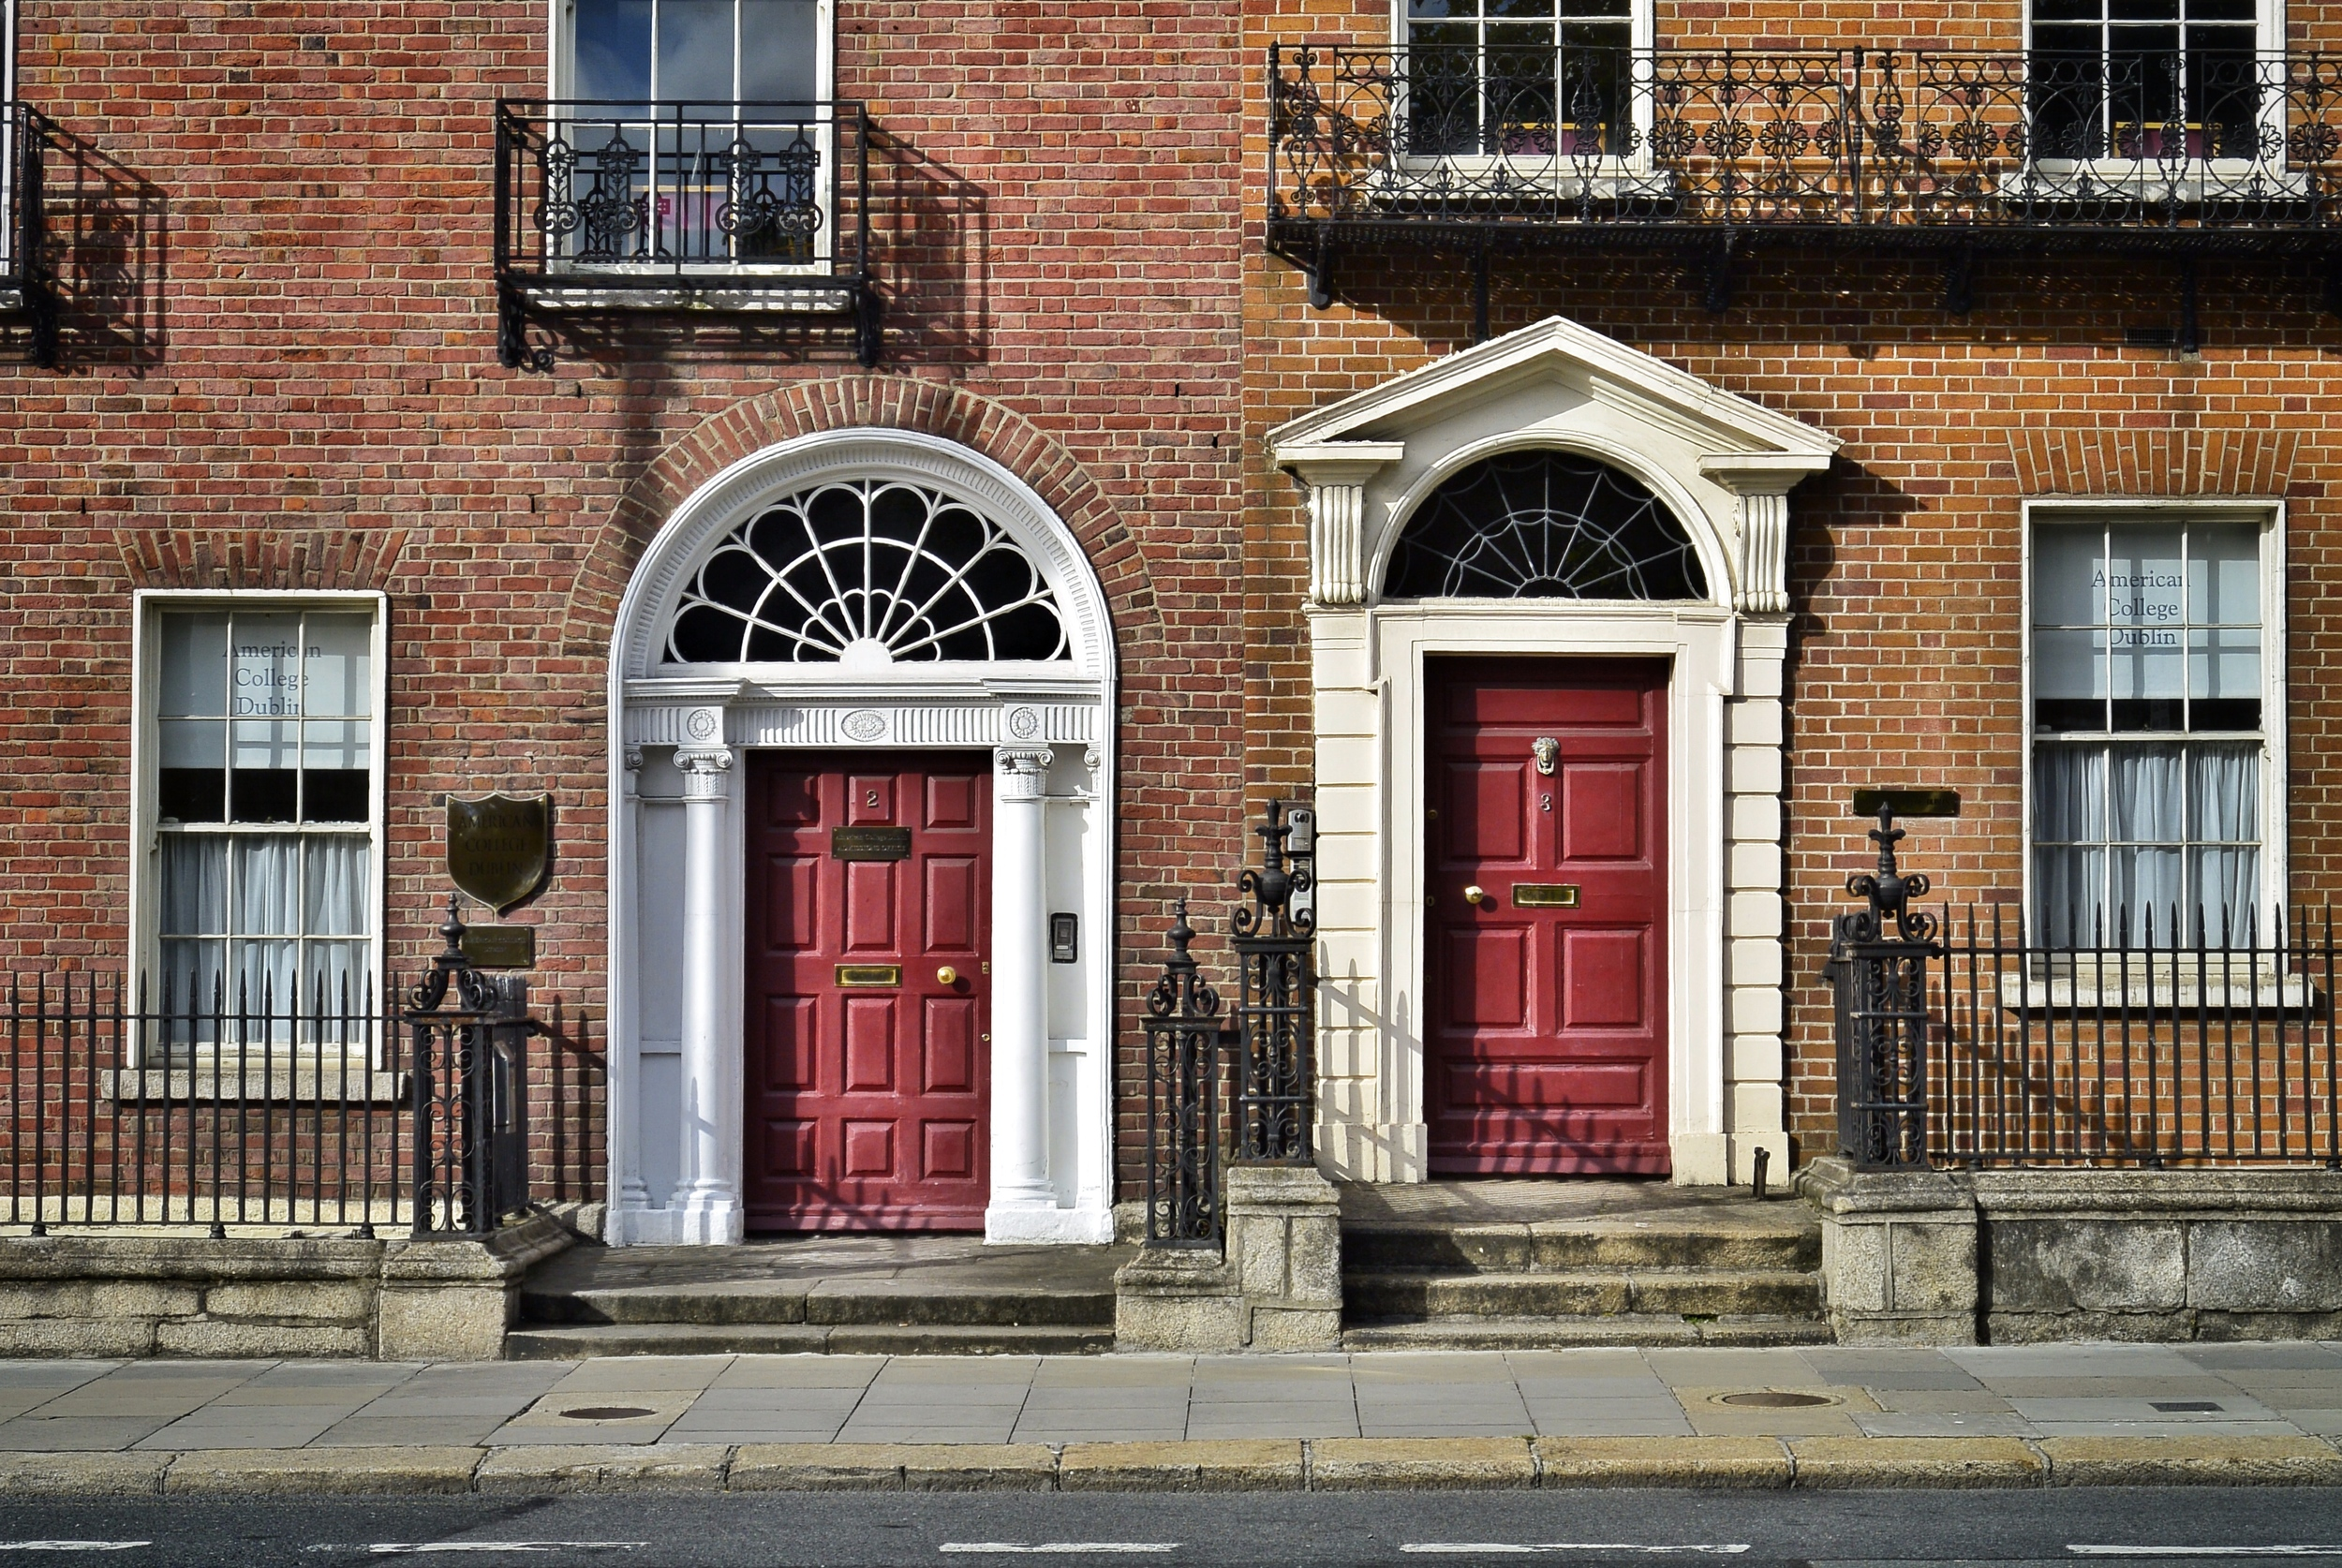 COLORFUL DOORS NEAR MERRION SQUARE IN DUBLIN